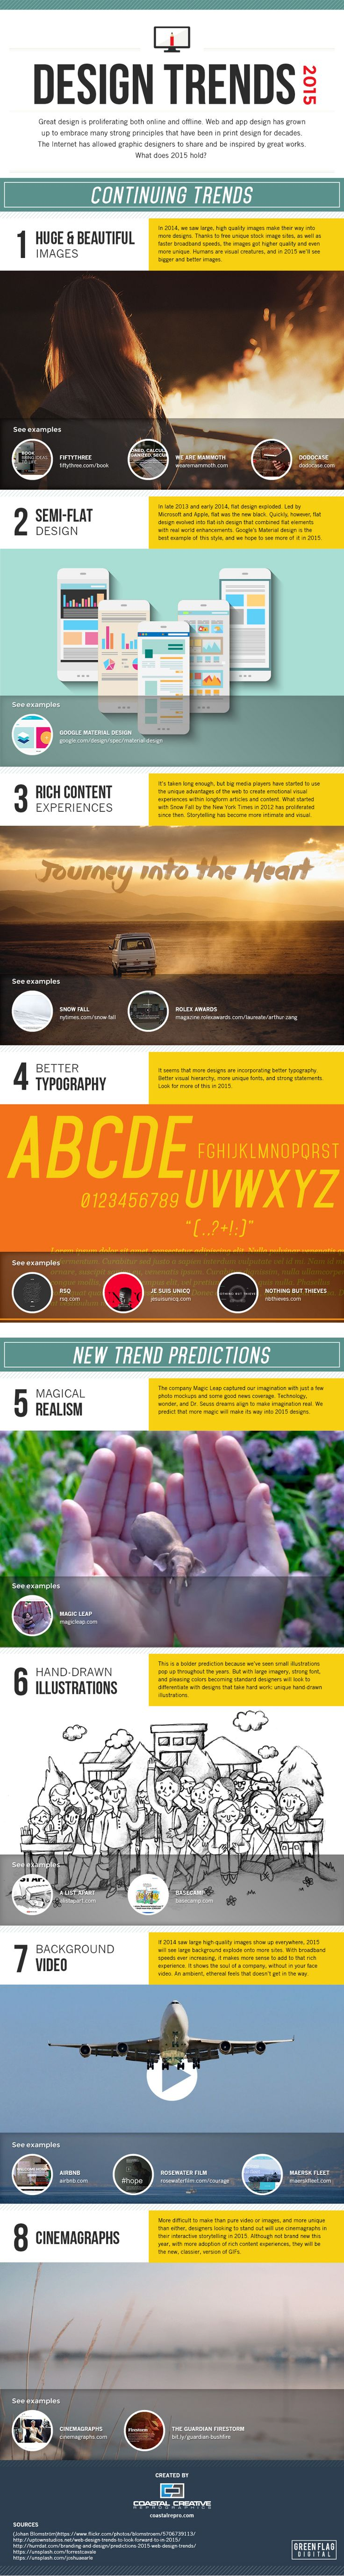 The most popular trends found in web design as we transition into the new year.